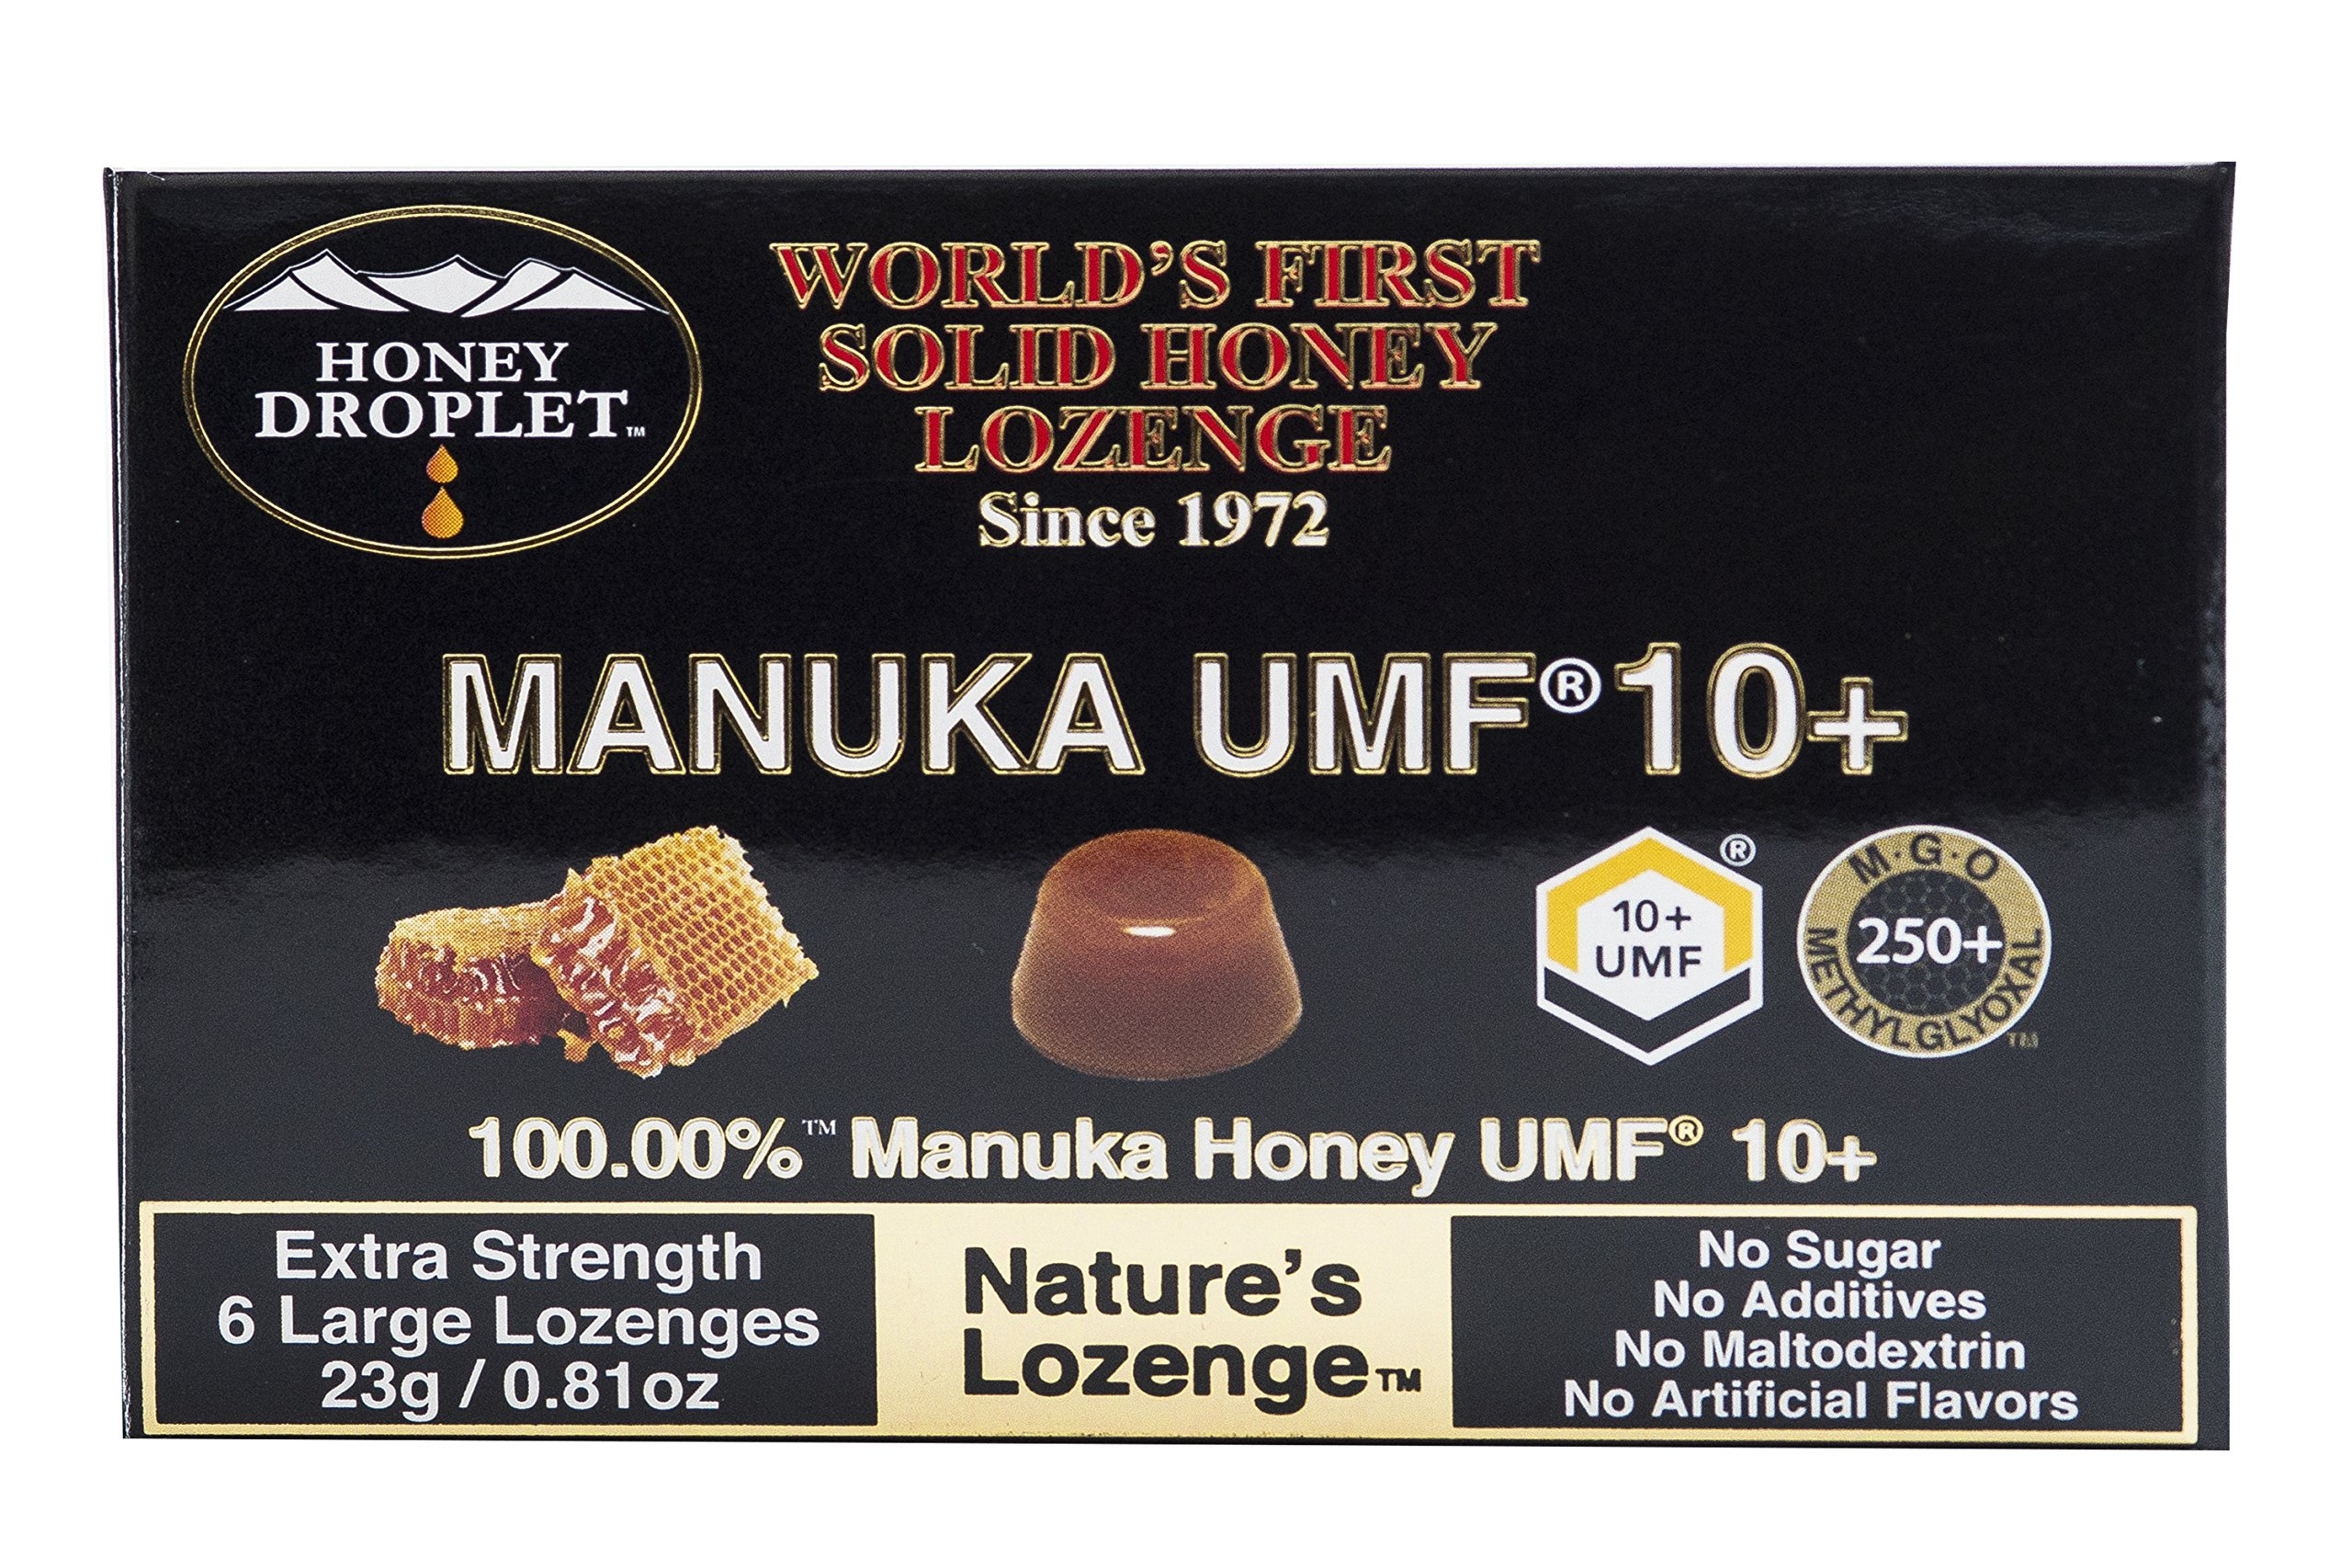 Pure 100% Manuka honey UMF 10+ in a solid form from New Zealand with no added sugar no maltodextrin non GMO a natural super-food antioxidant